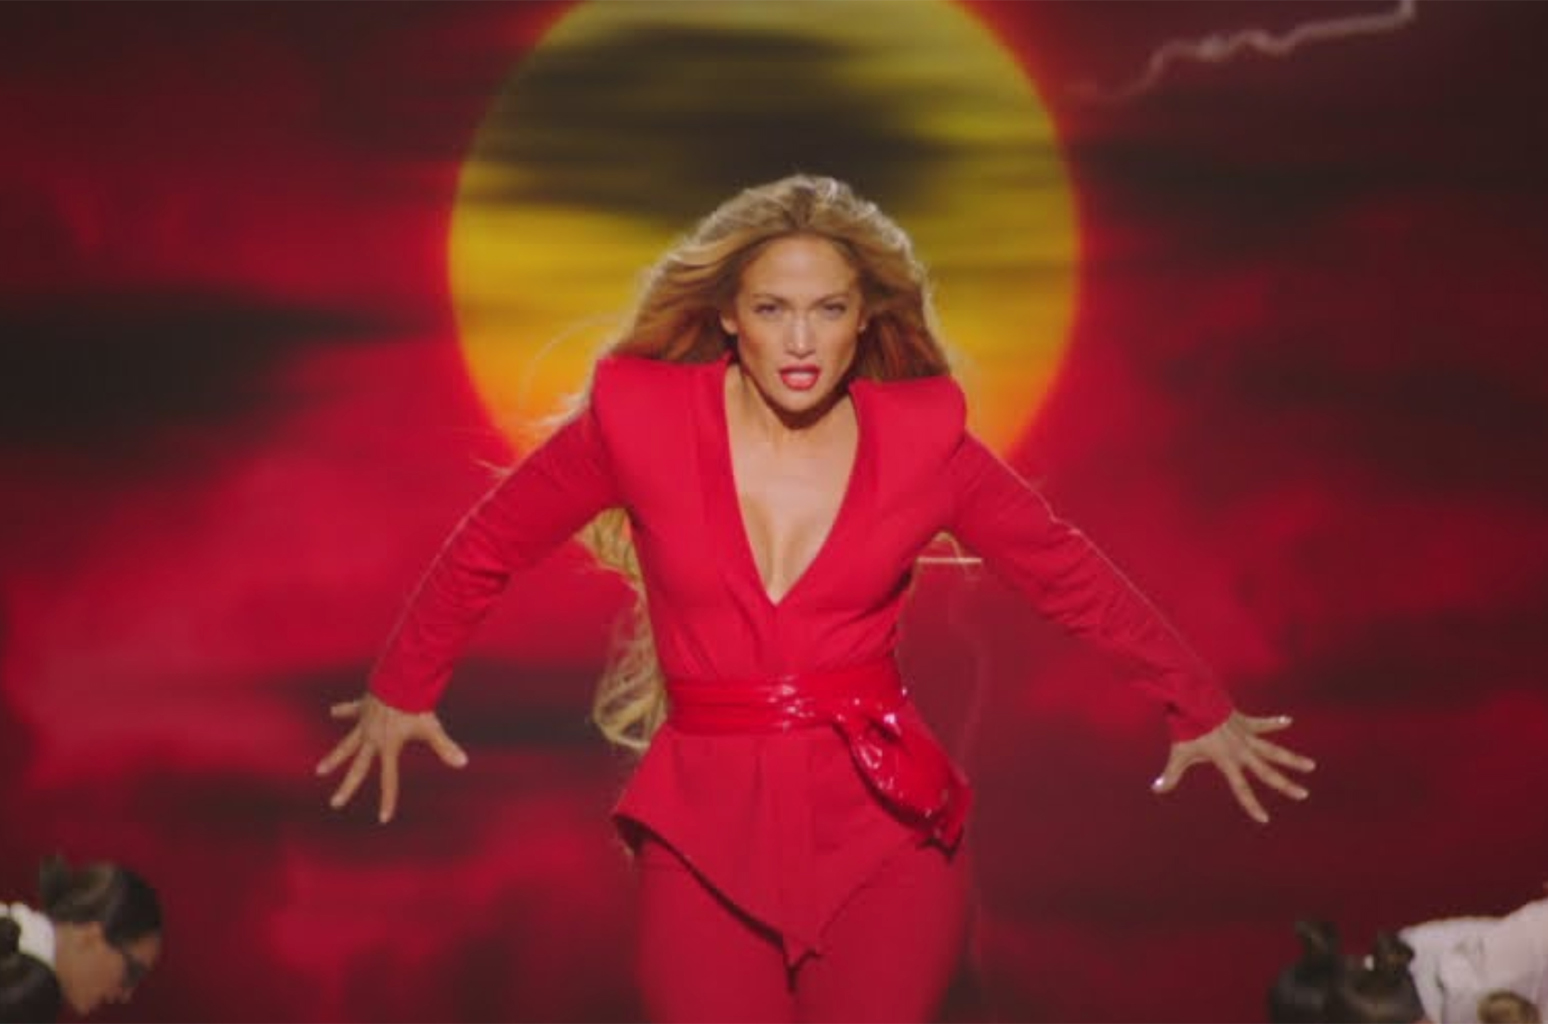 Jennifer-Lopez-Limitless